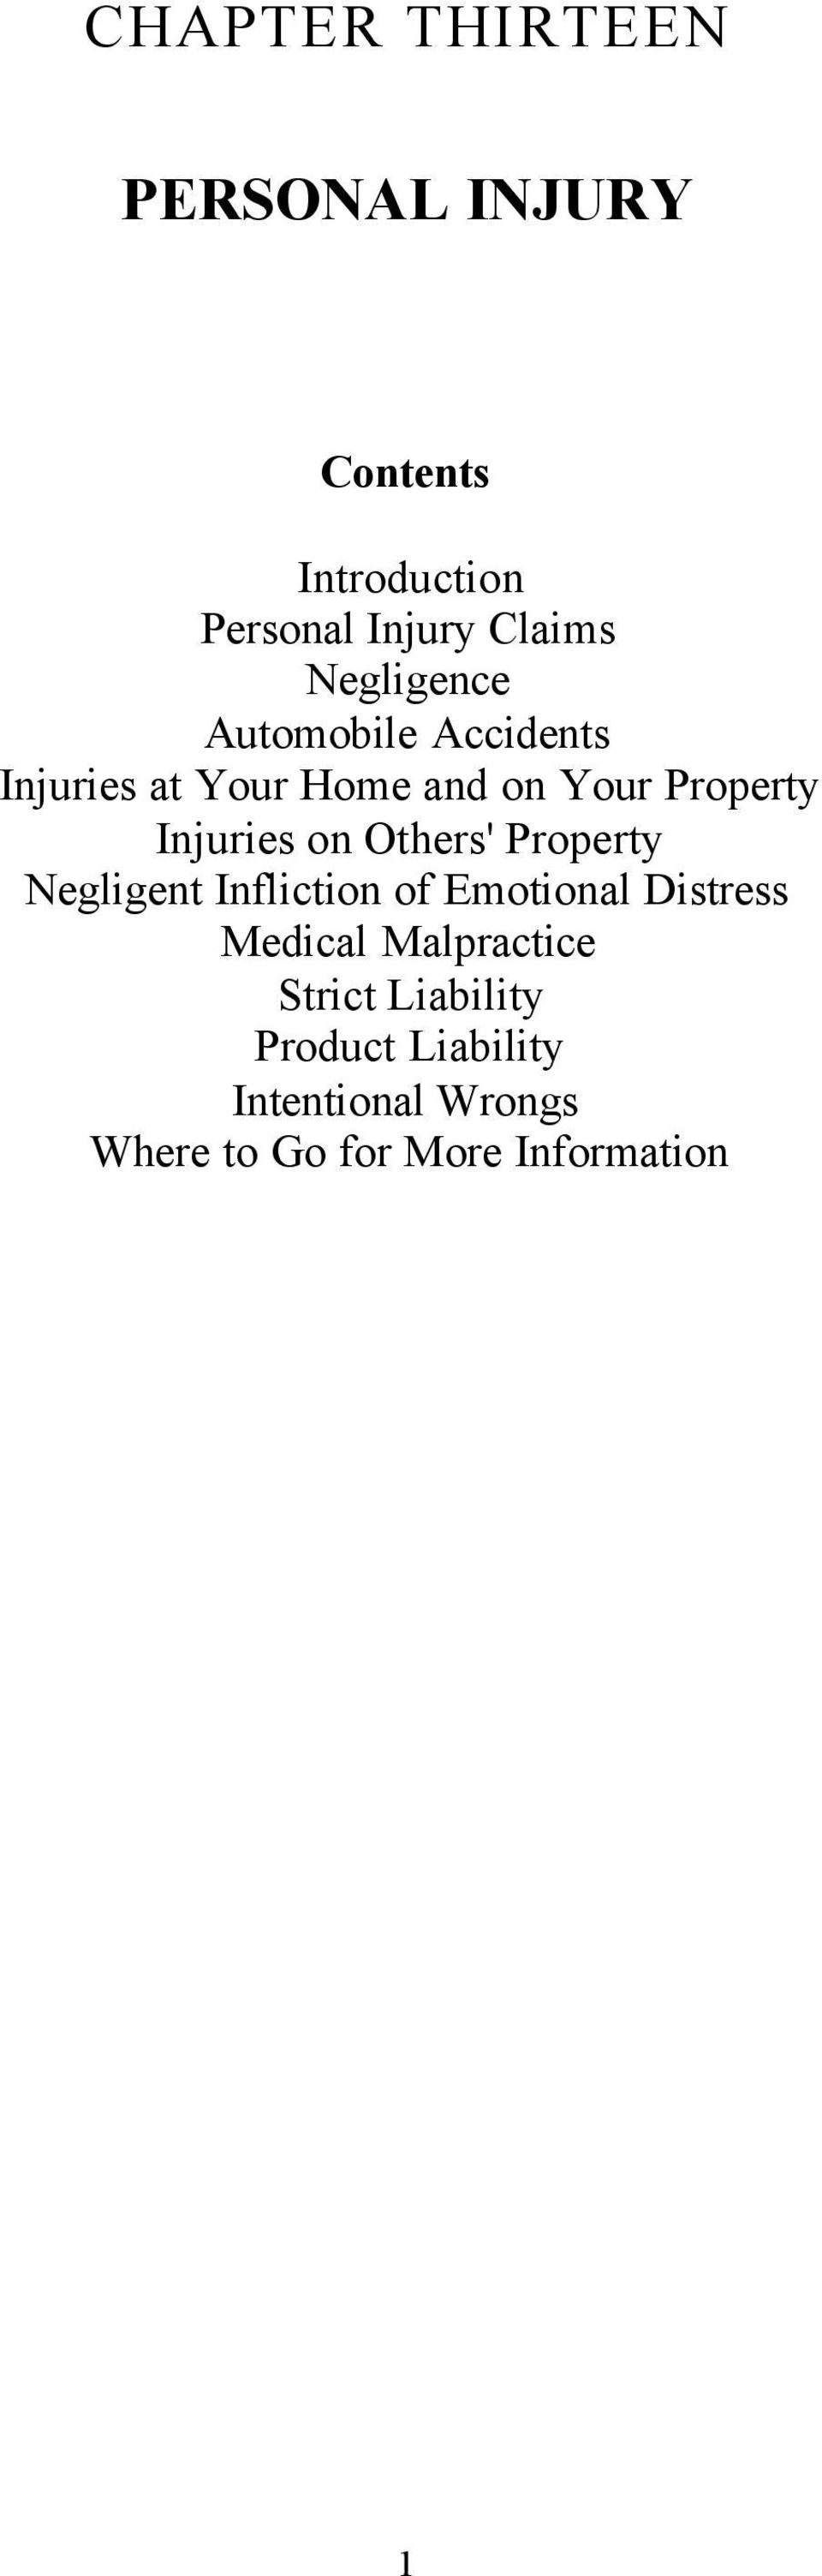 on Others' Property Negligent Infliction of Emotional Distress Medical Malpractice